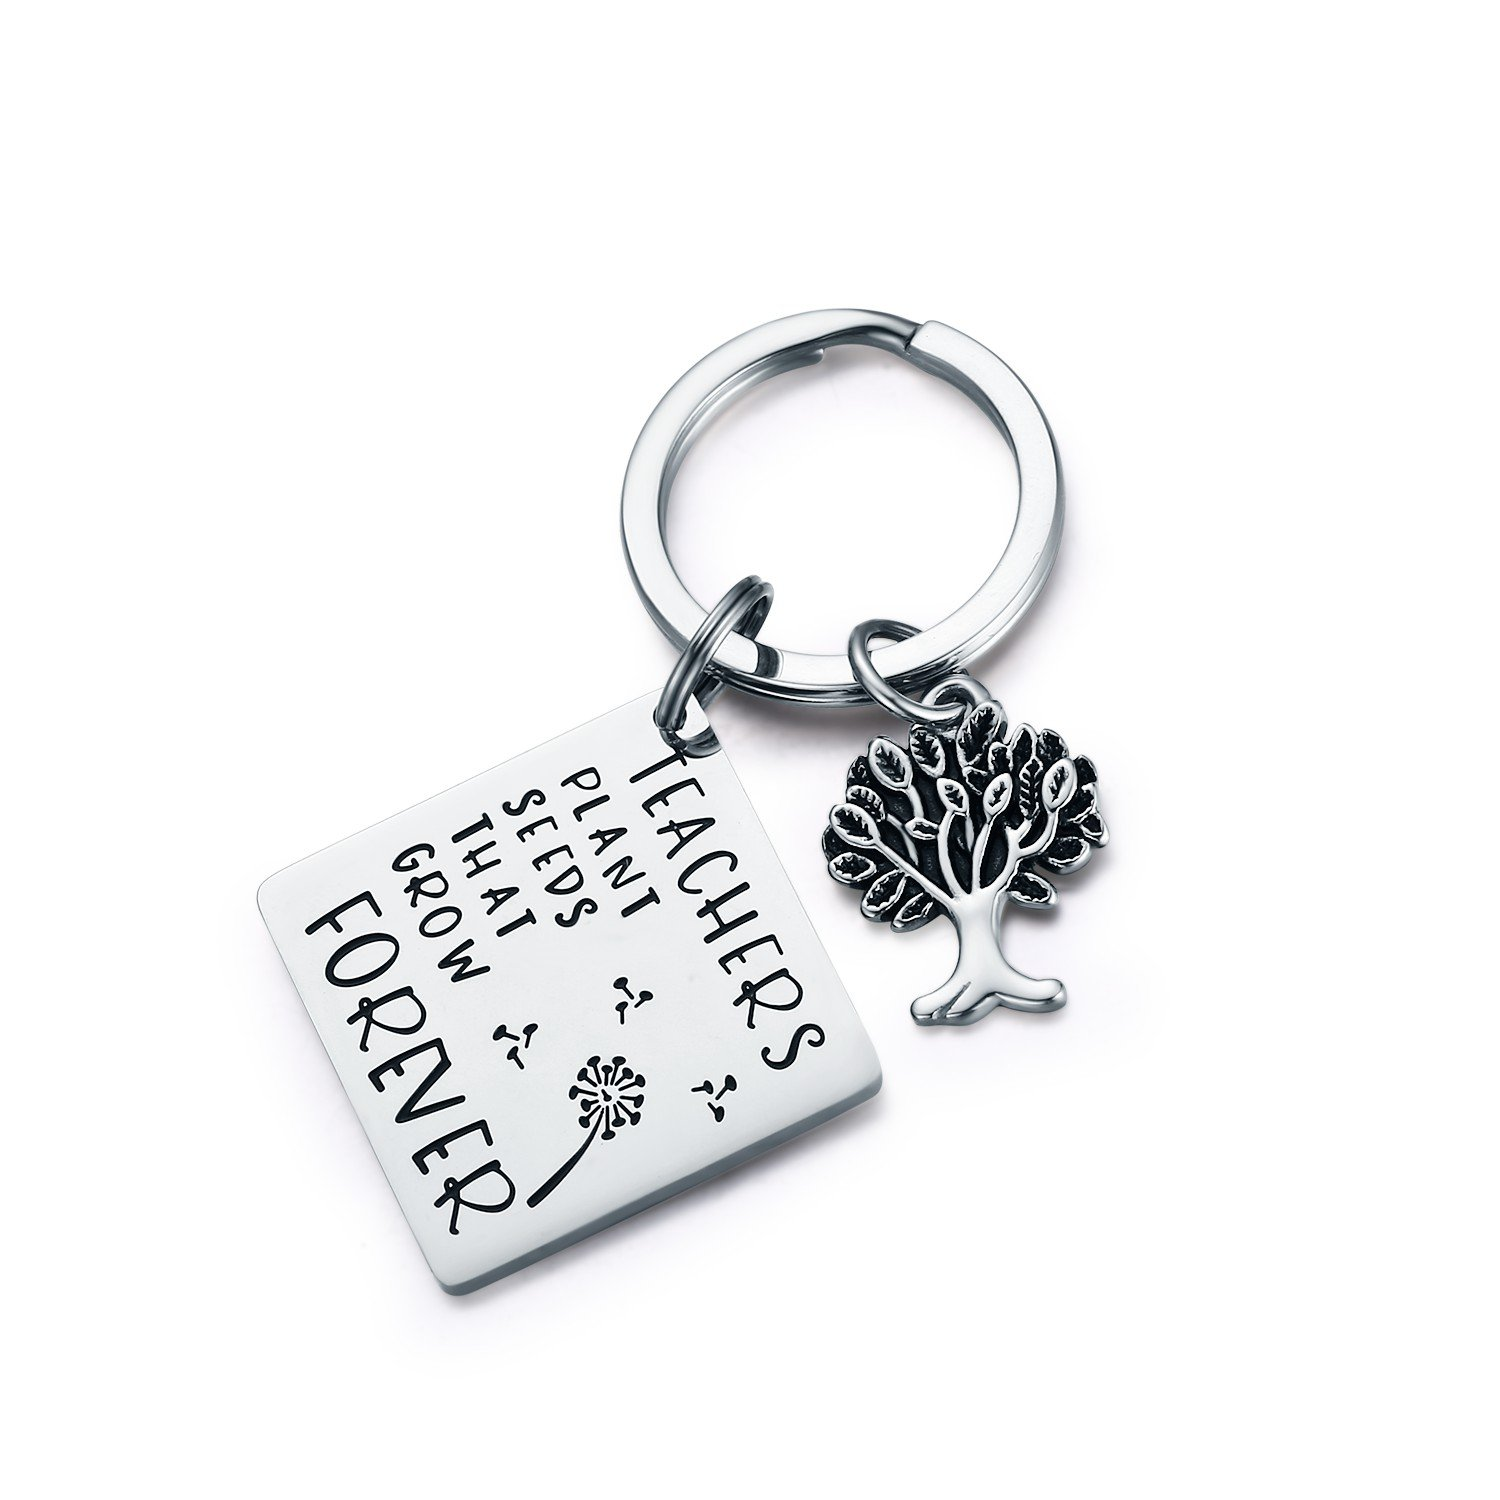 CJ&M Graduation Gift,Personalized Teacher keychain,Christmas Gifts for Teacher, Gift from Student, Personalized Teacher Jewelry (Keychain)